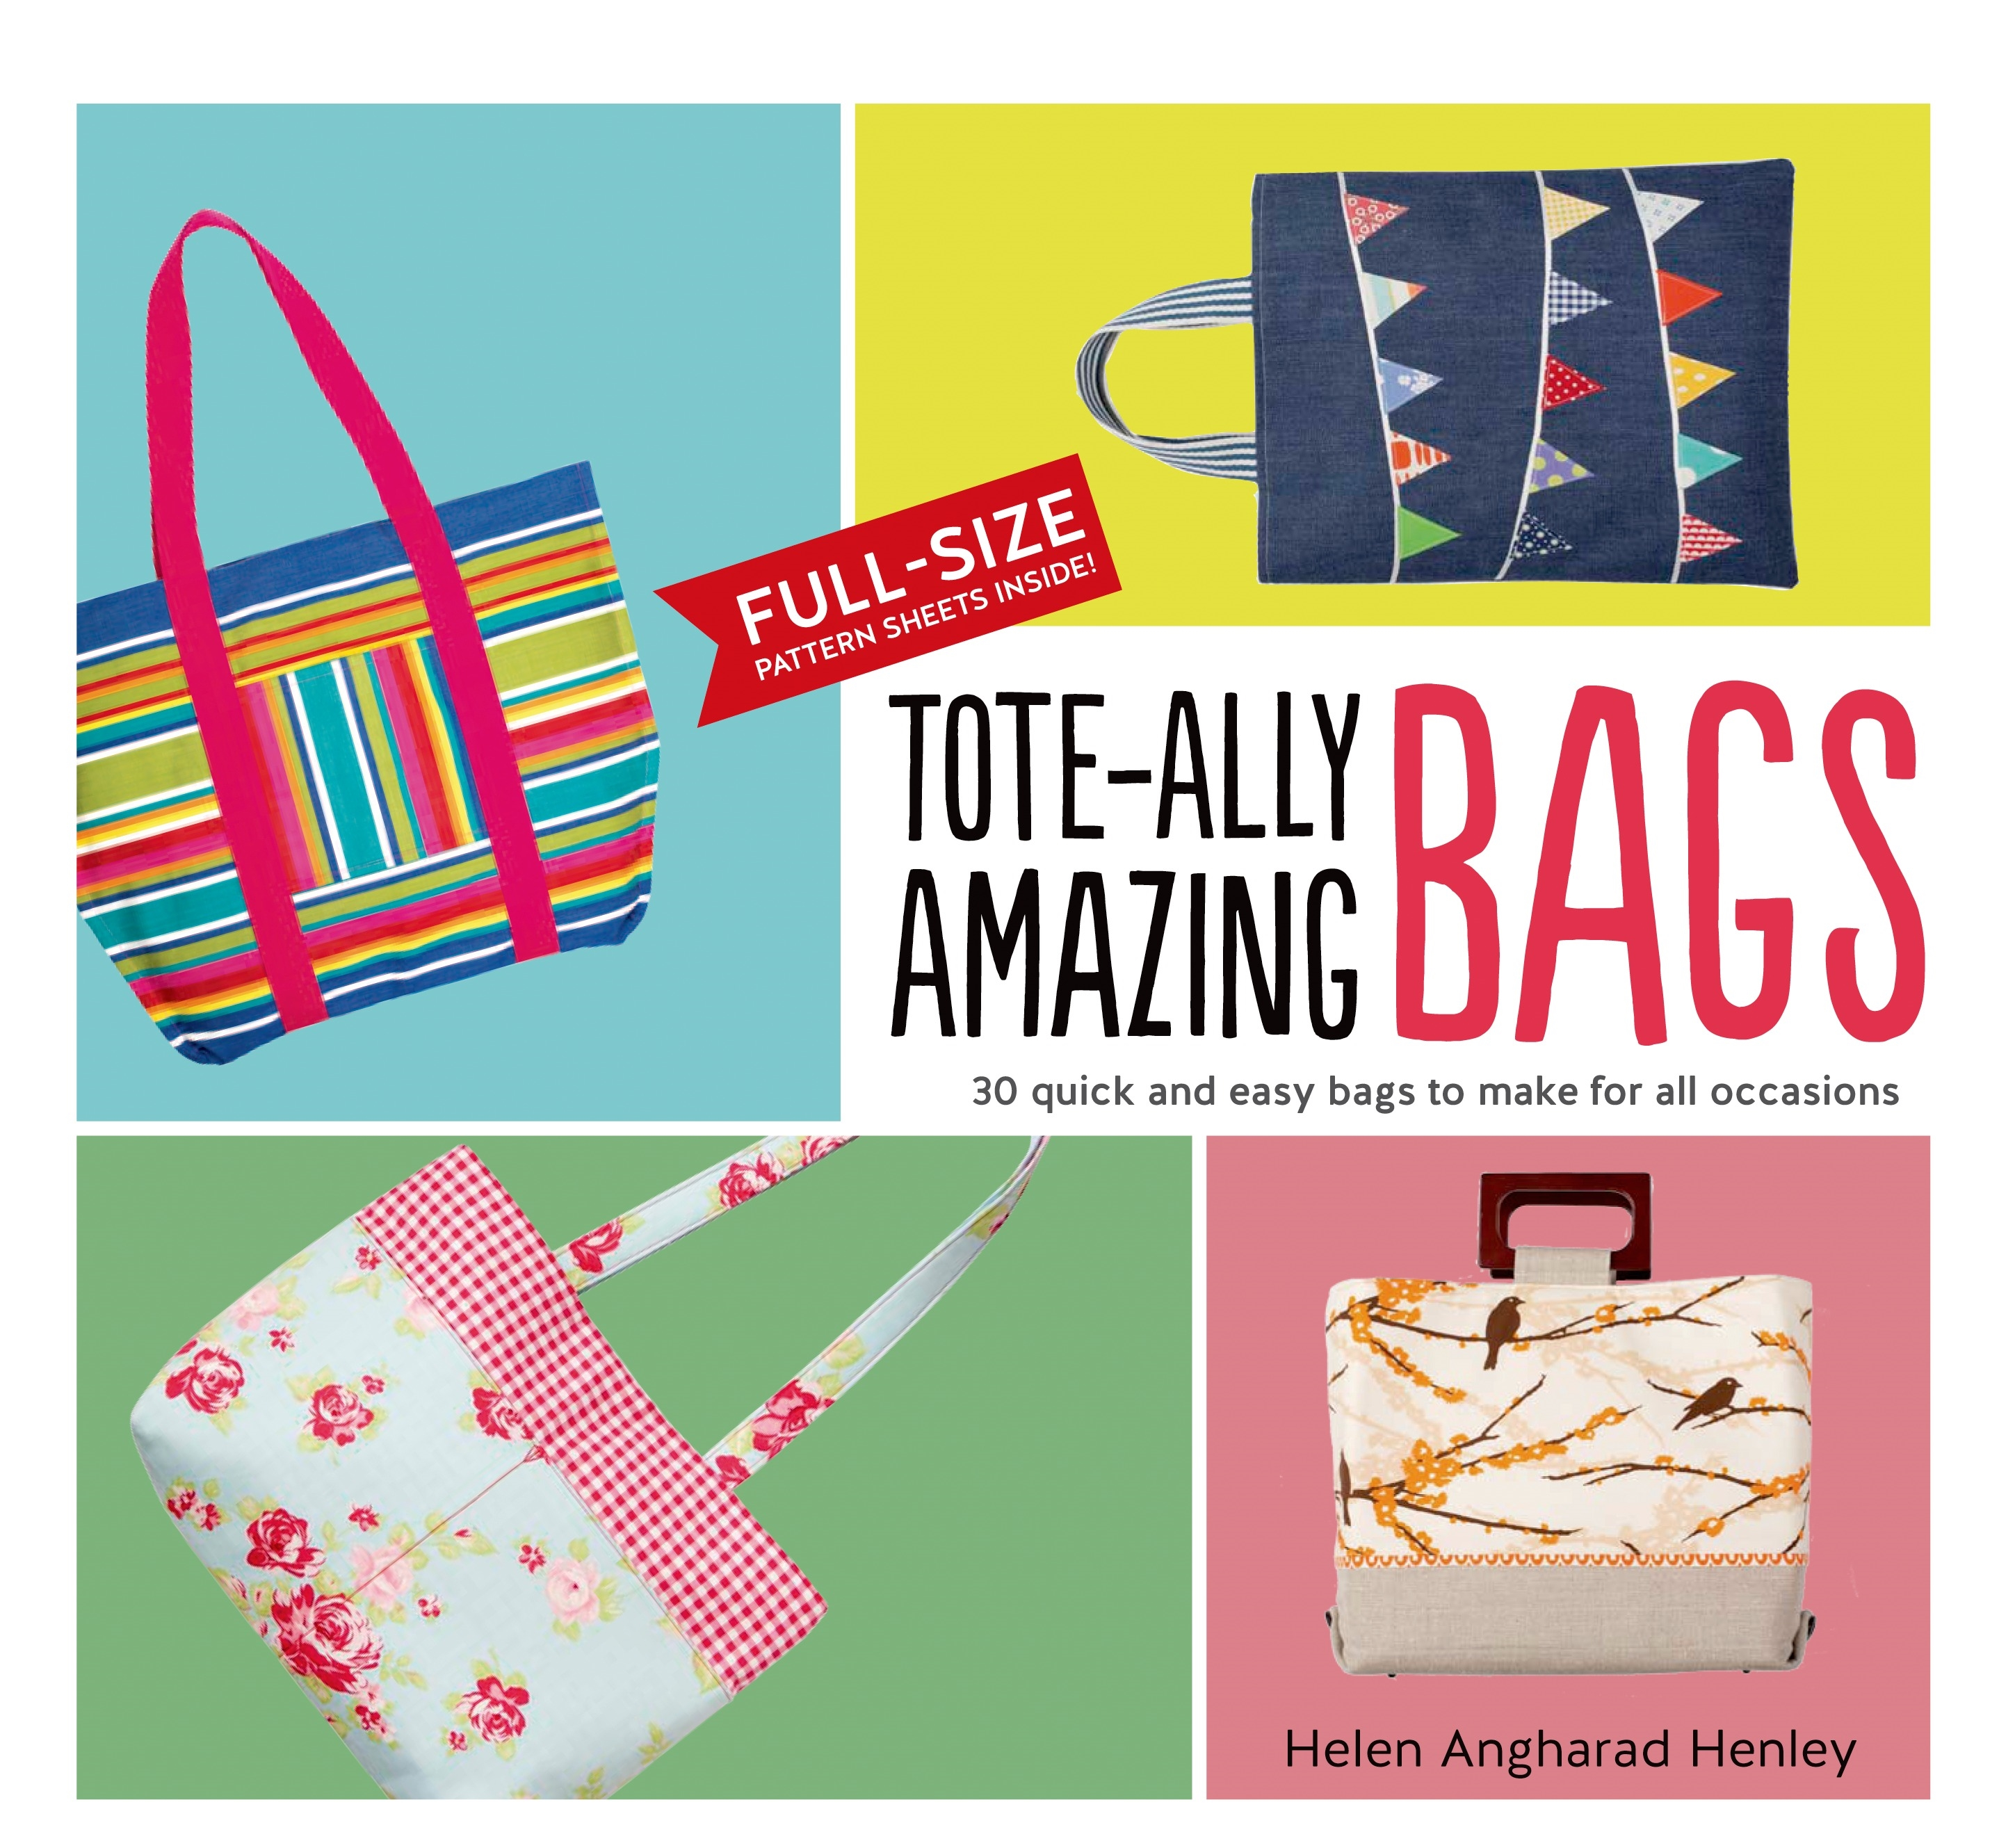 Tote-Ally Amazing Bags : 30 Quick and Easy Bags to Make for All Occasions